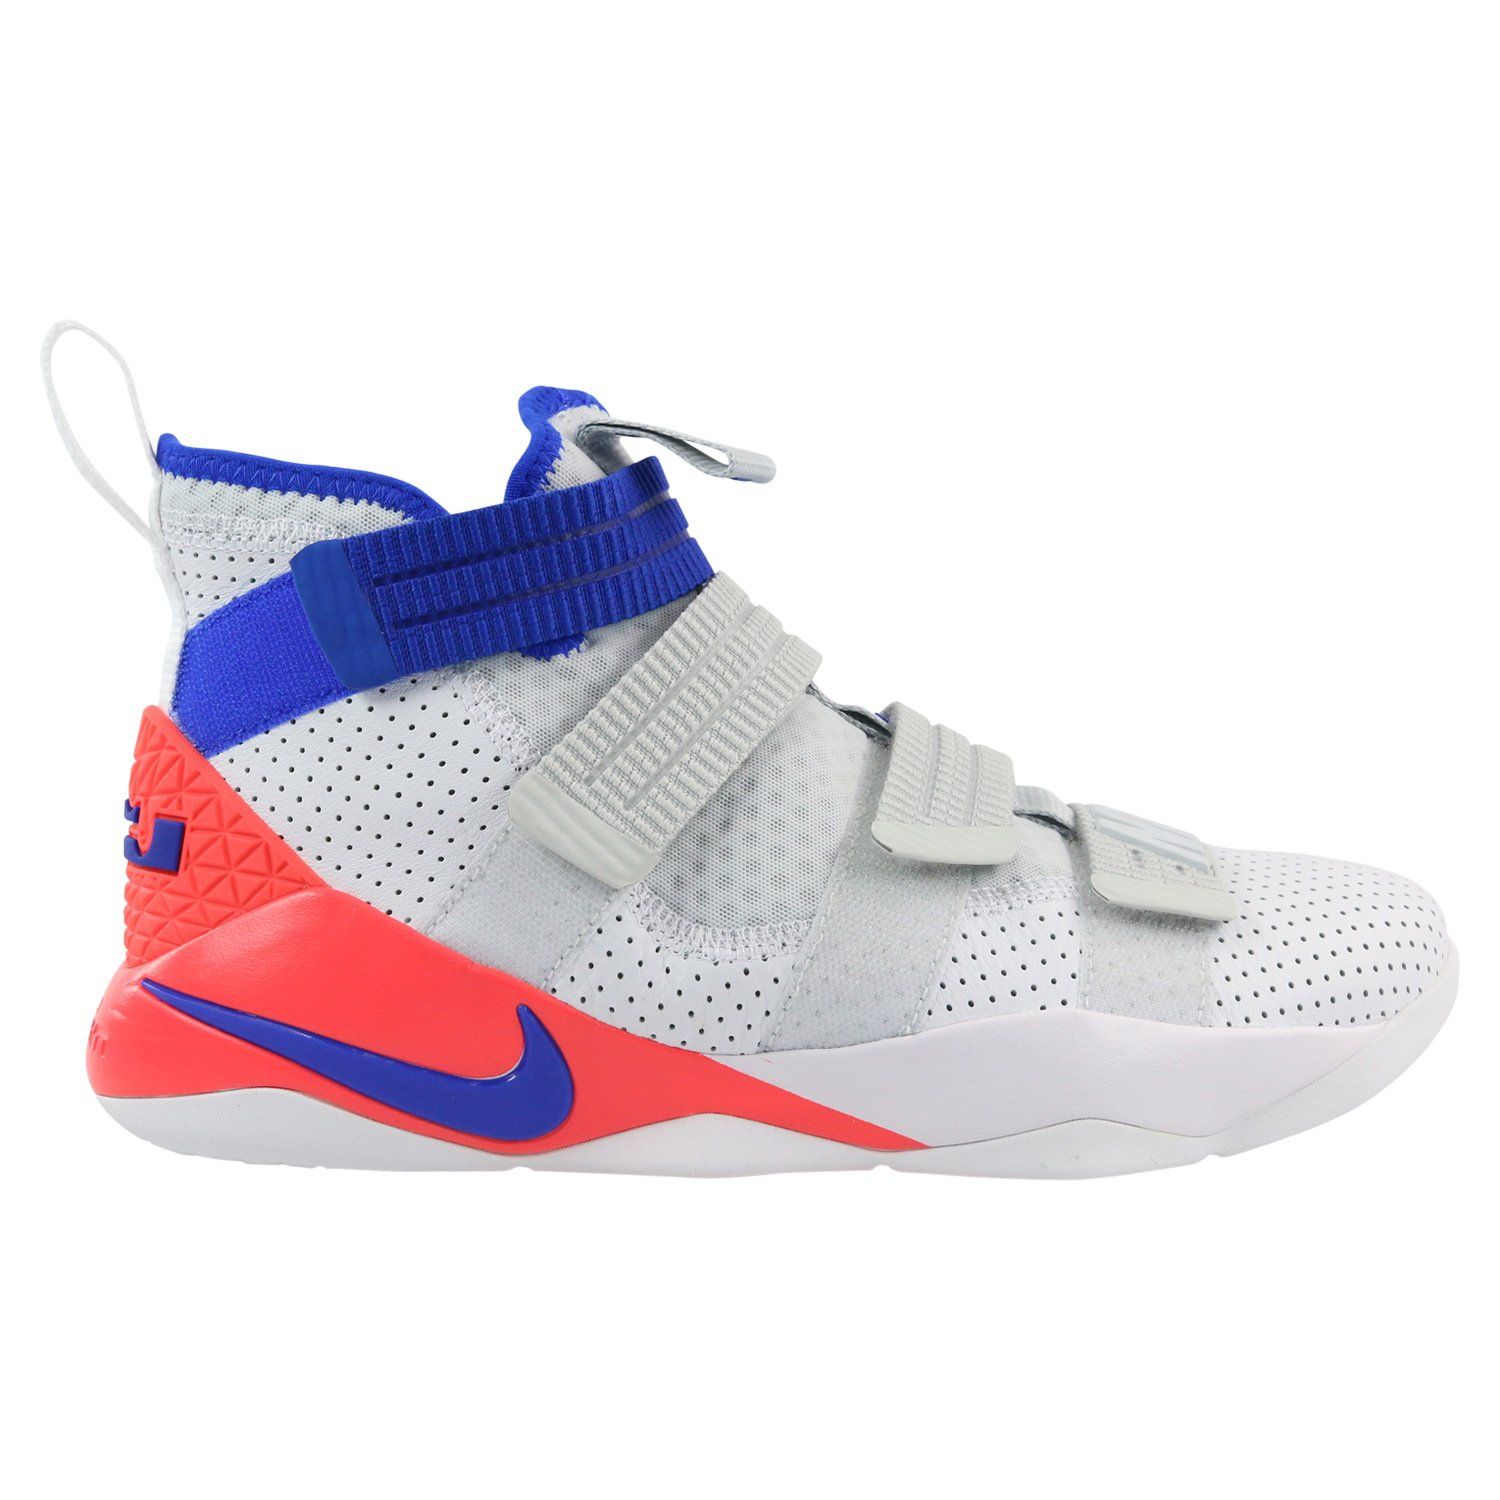 low priced 11b7e 1372d Amazon.com   Nike Lebron Soldier 11 SFG Ultramarine Mens Basketball-Shoes  897646-101 14 - Grey   Basketball